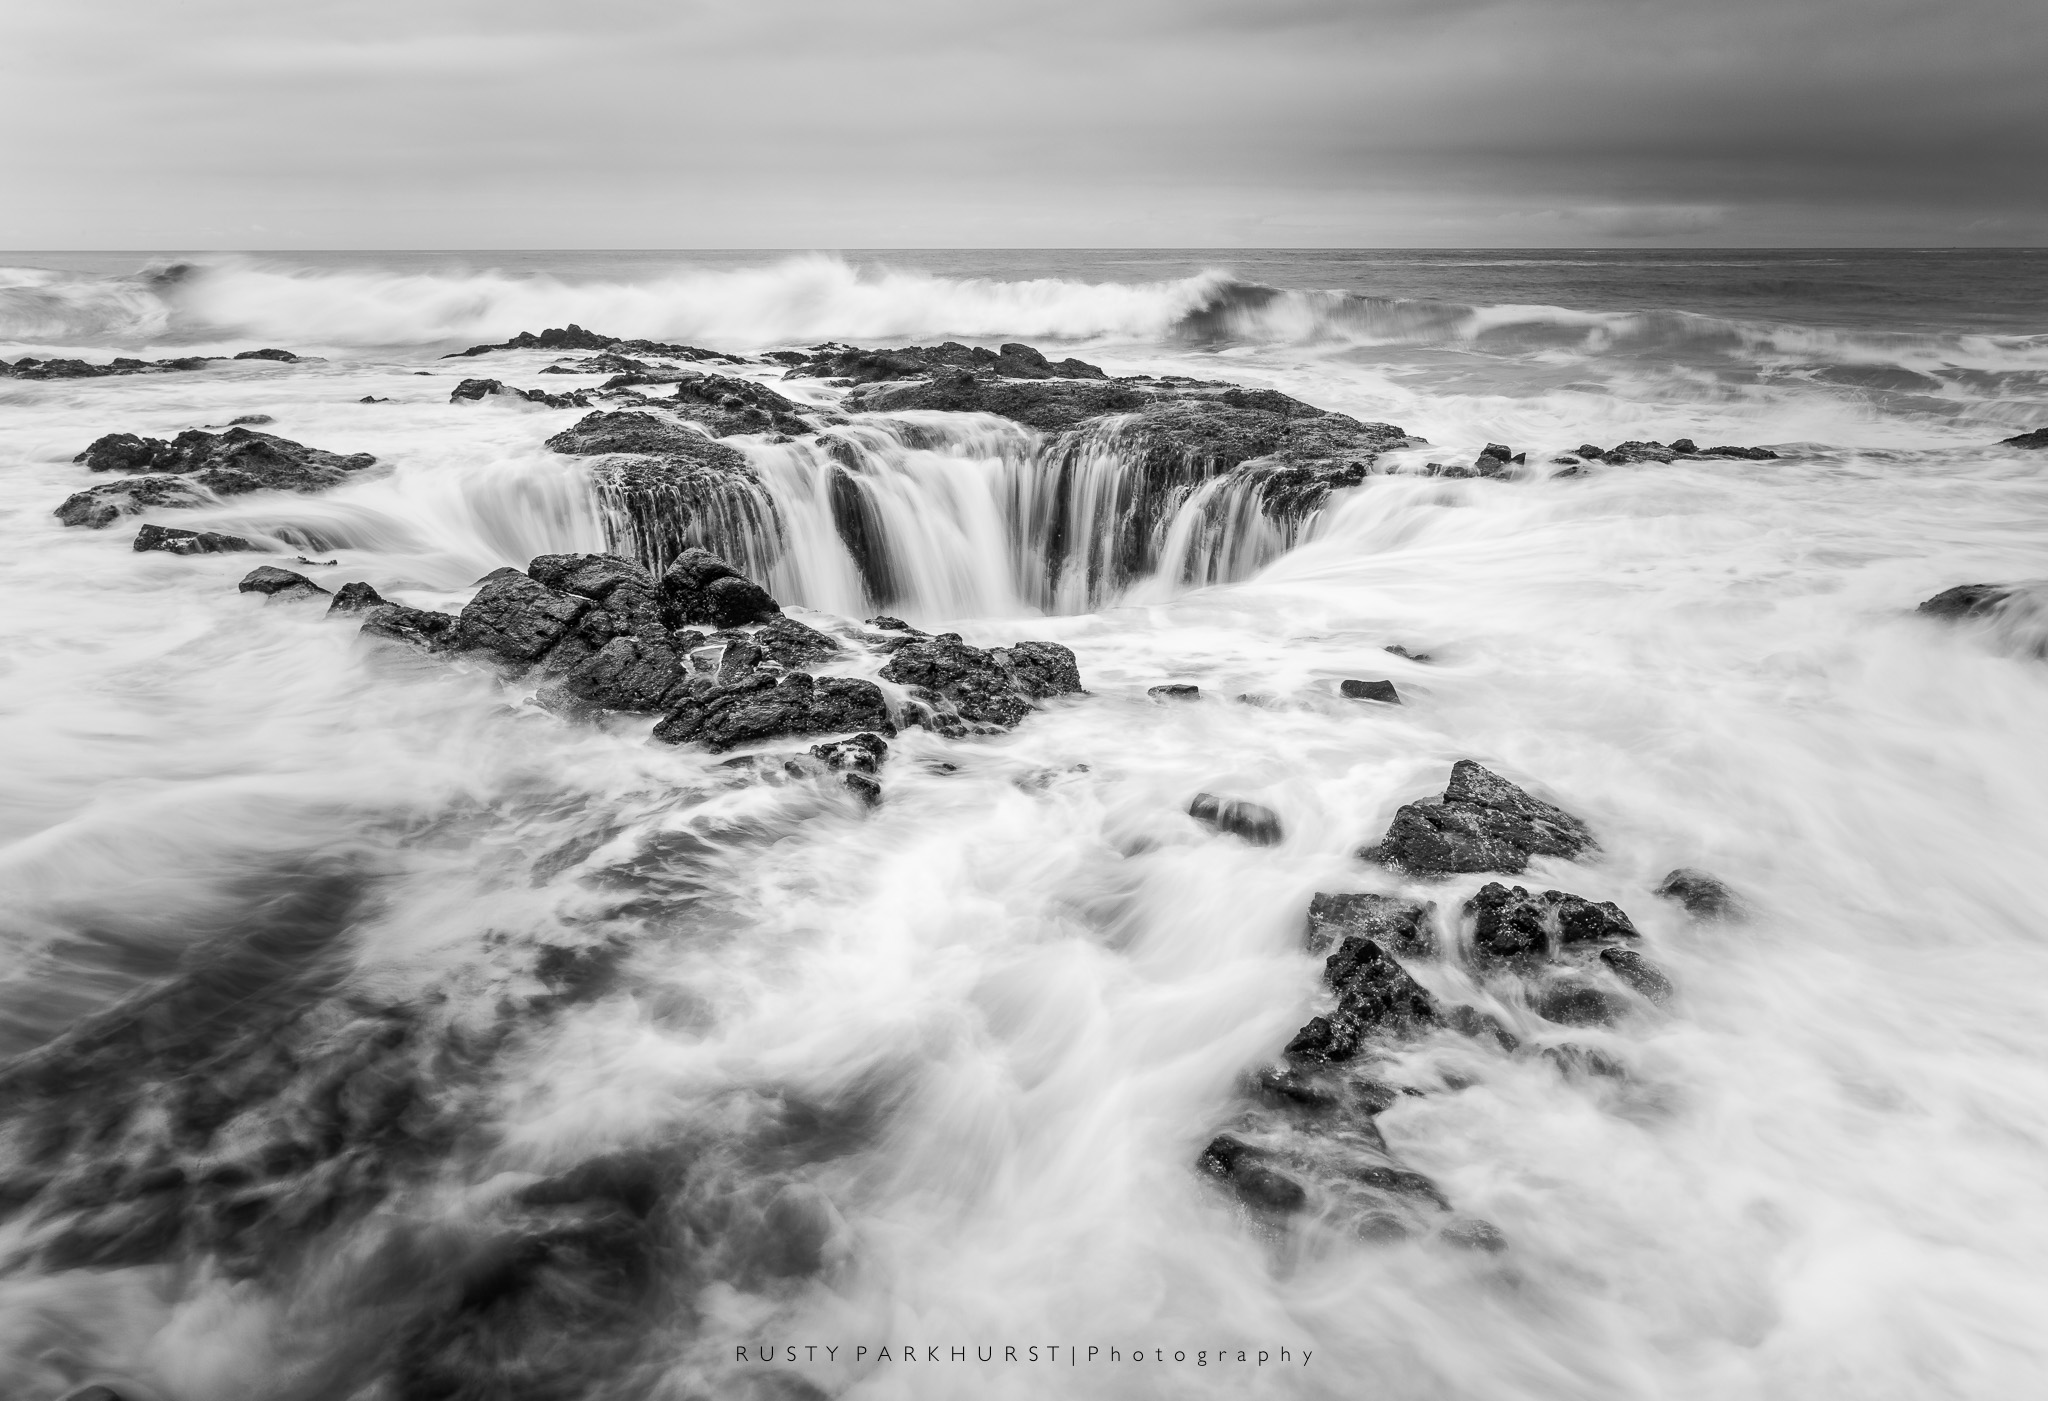 Thor's Well   - taken May 19, 2015. This is an amazing sight to see, located along the coast to the south of Yachats, Oregon.  The waves move in and out, filling the subsurface tunnel to this blowhole, that seems to be a natural drain for the sea.  Just be careful to not get too close!